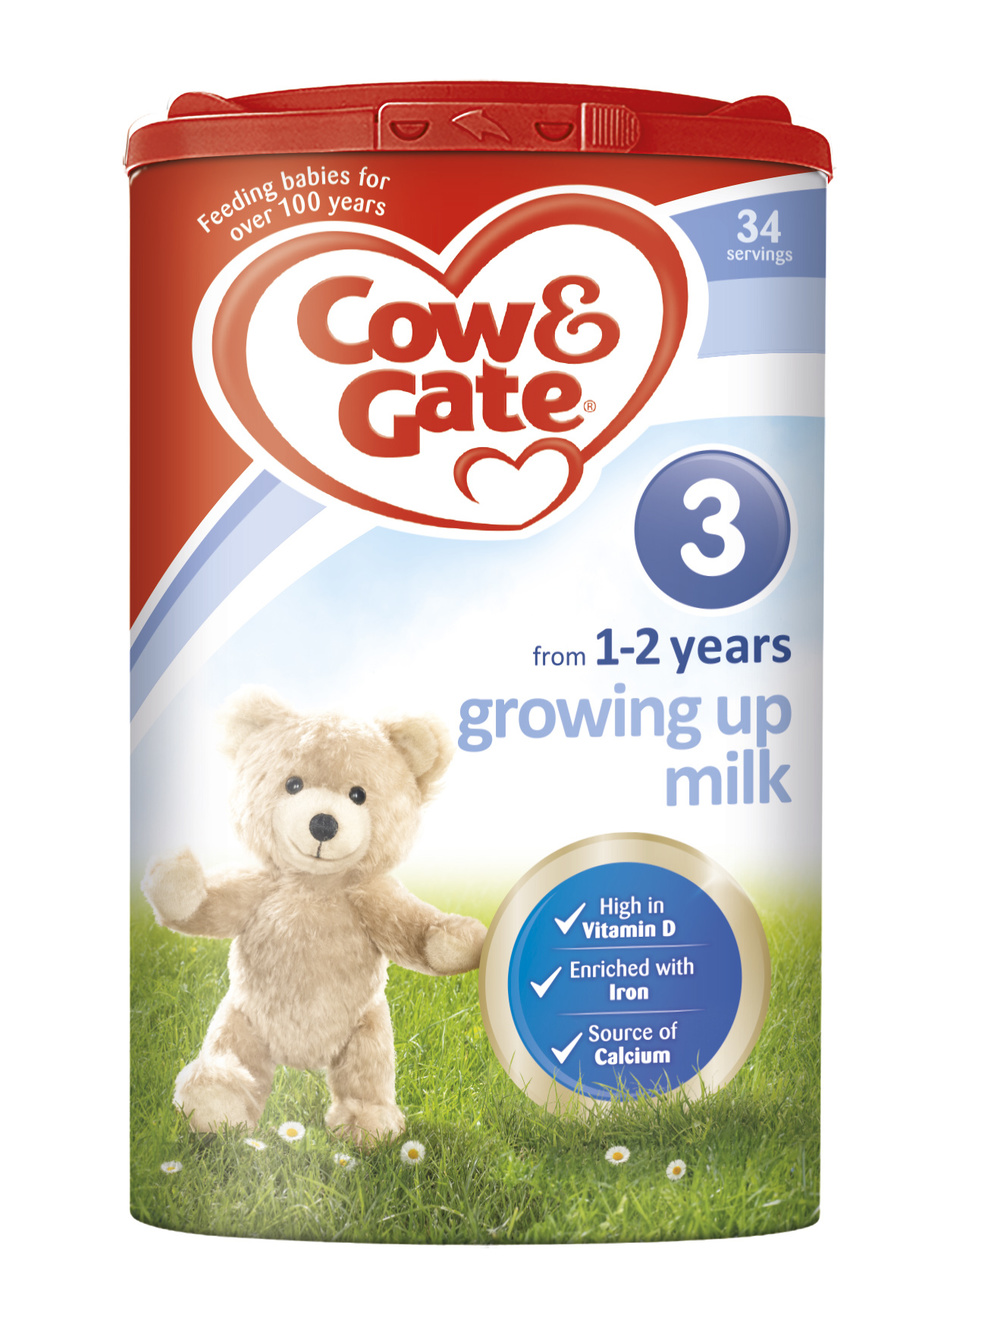 Cow & Gate animal photo teddy bear